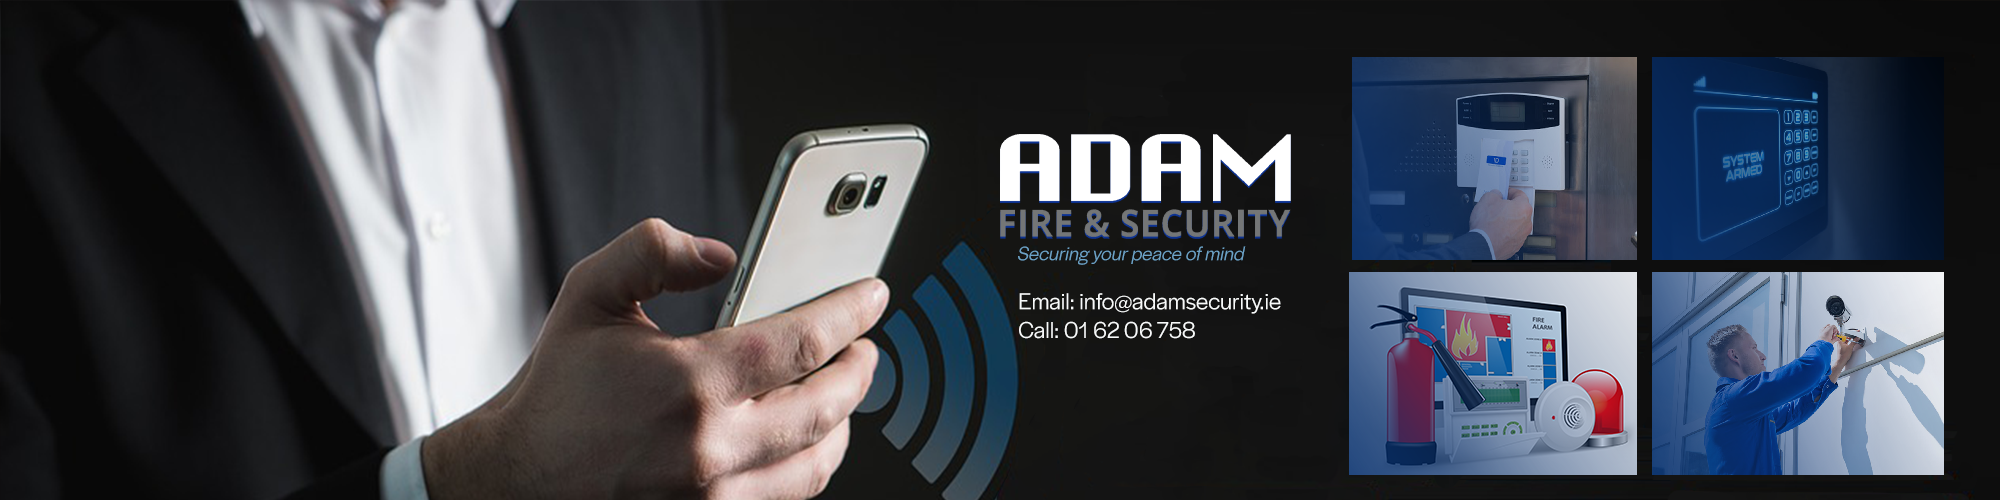 ADAM Security